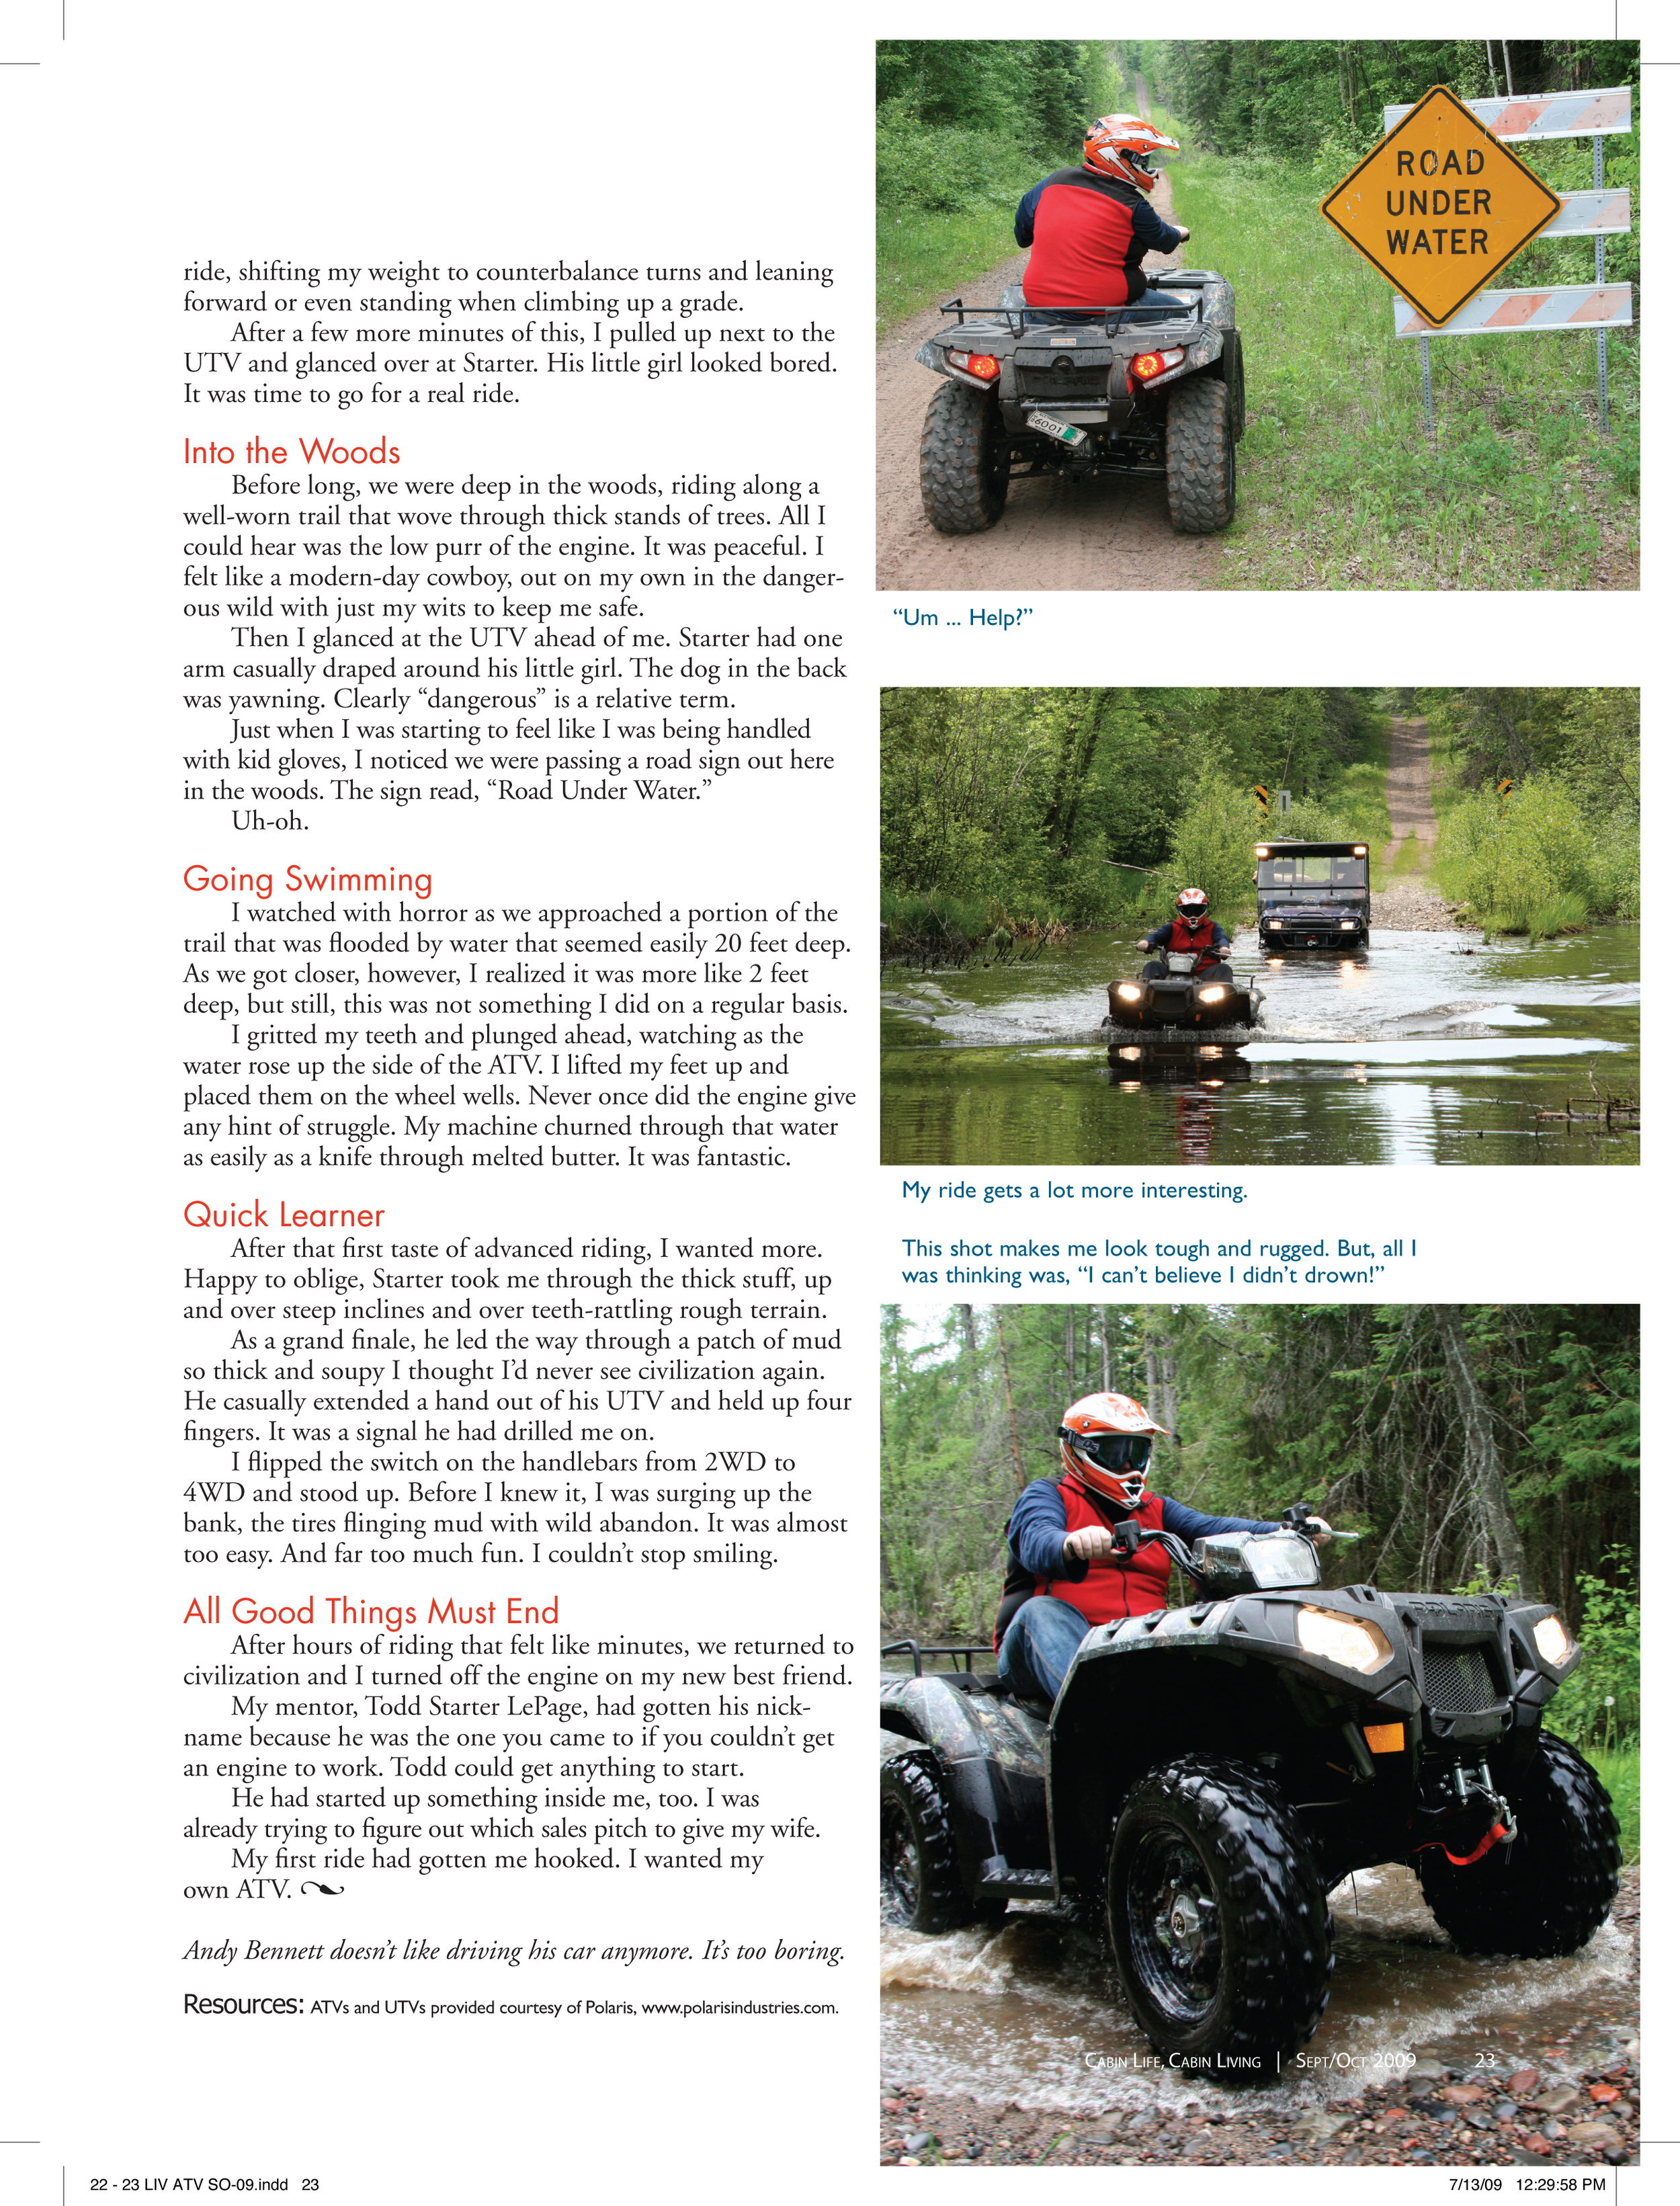 My First Ride - ATV-2.jpg